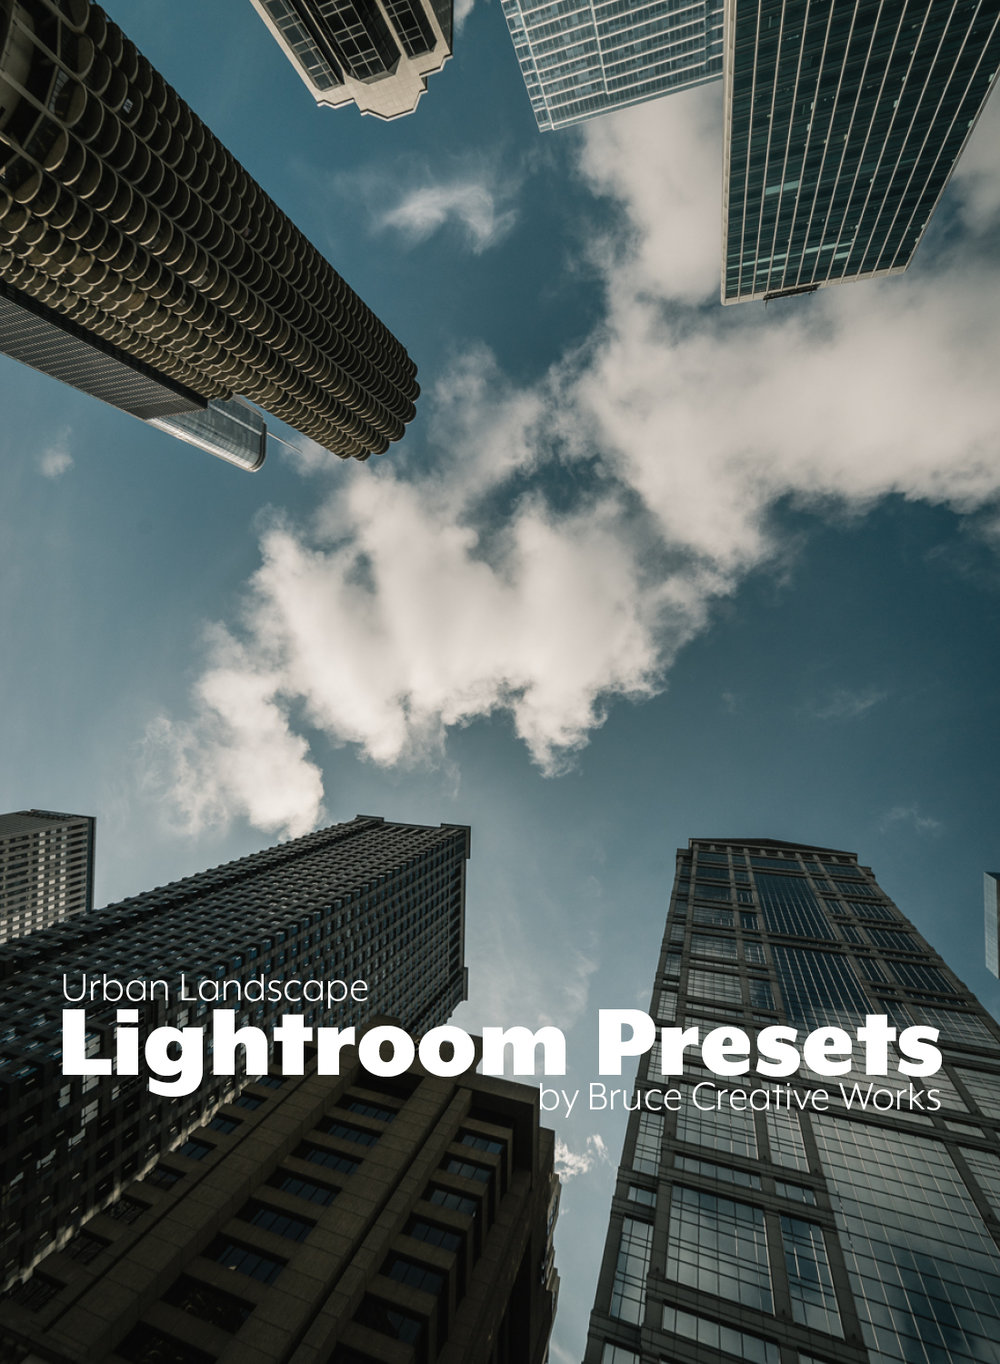 Urban Landscape Lightroom Presets.jpg